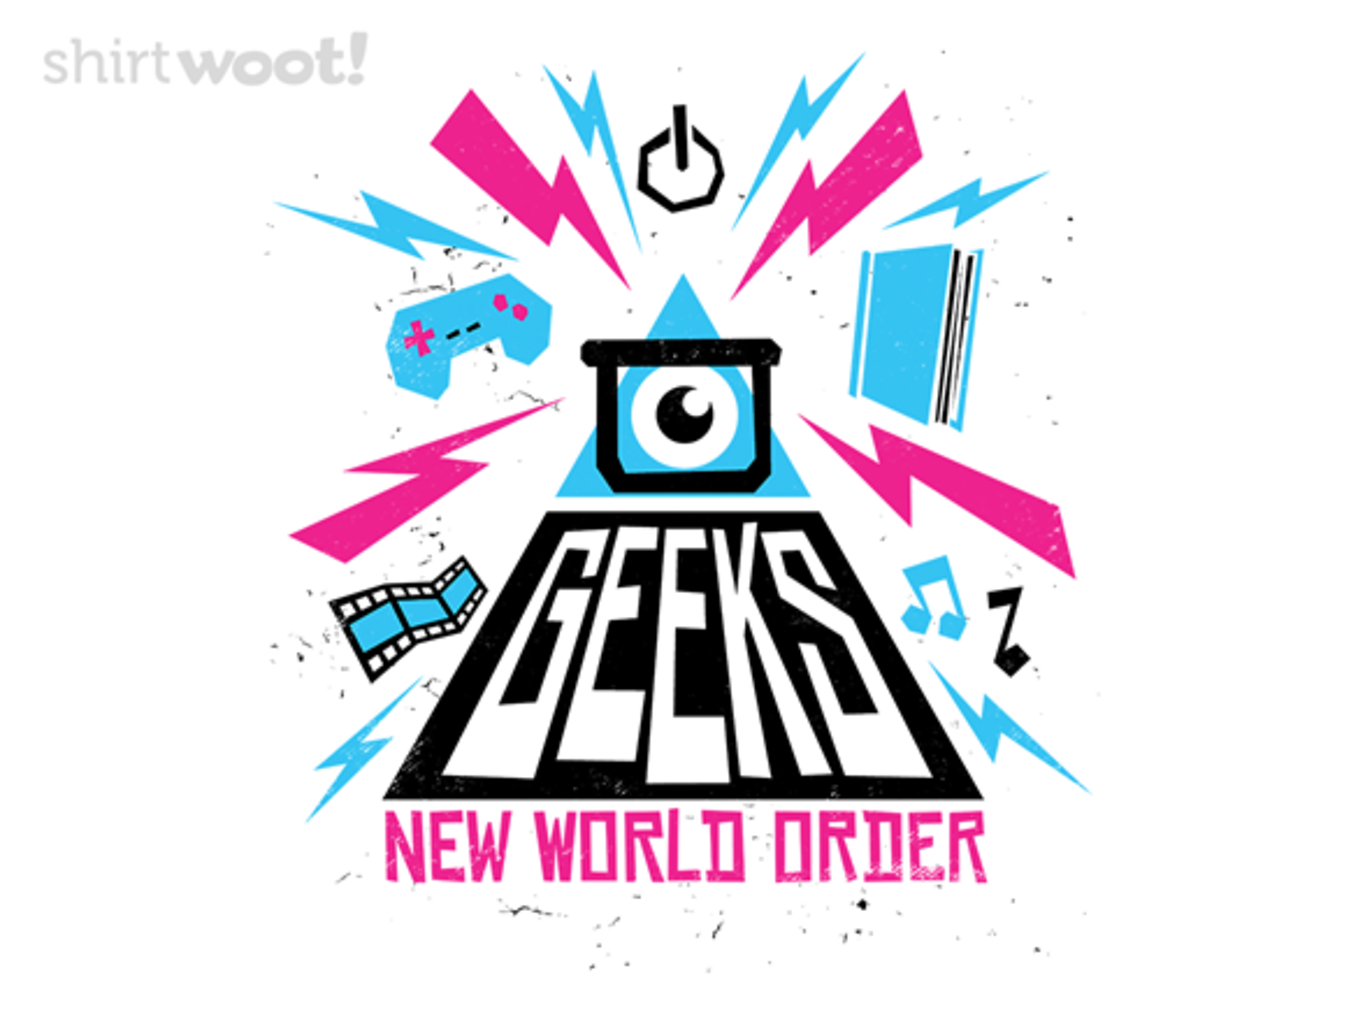 Woot!: New World Order - $15.00 + Free shipping